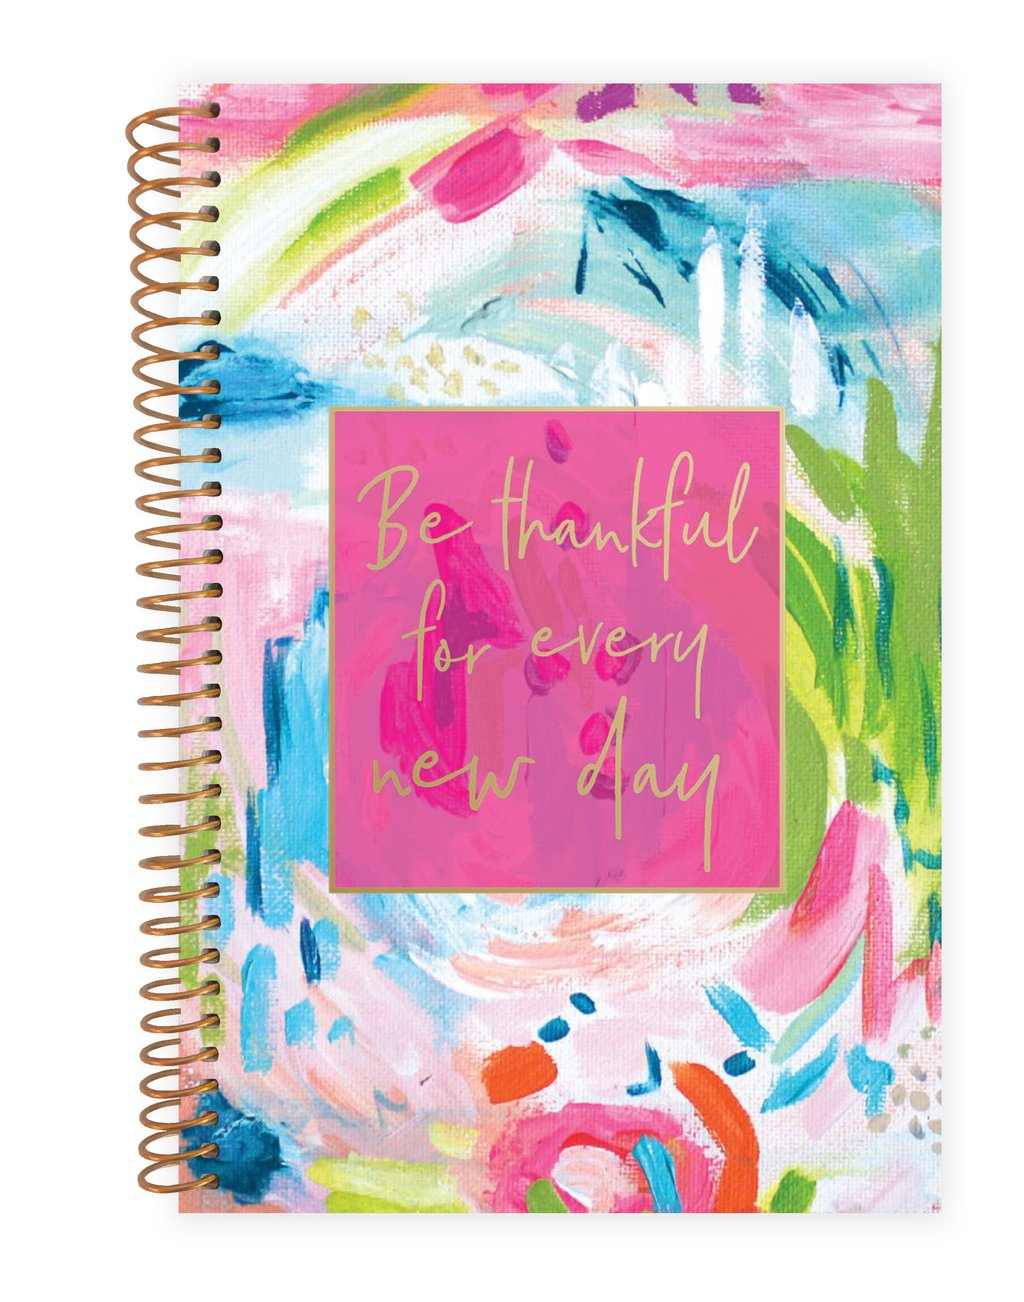 Cleerely Stated - 2020 Soft Cover Planner